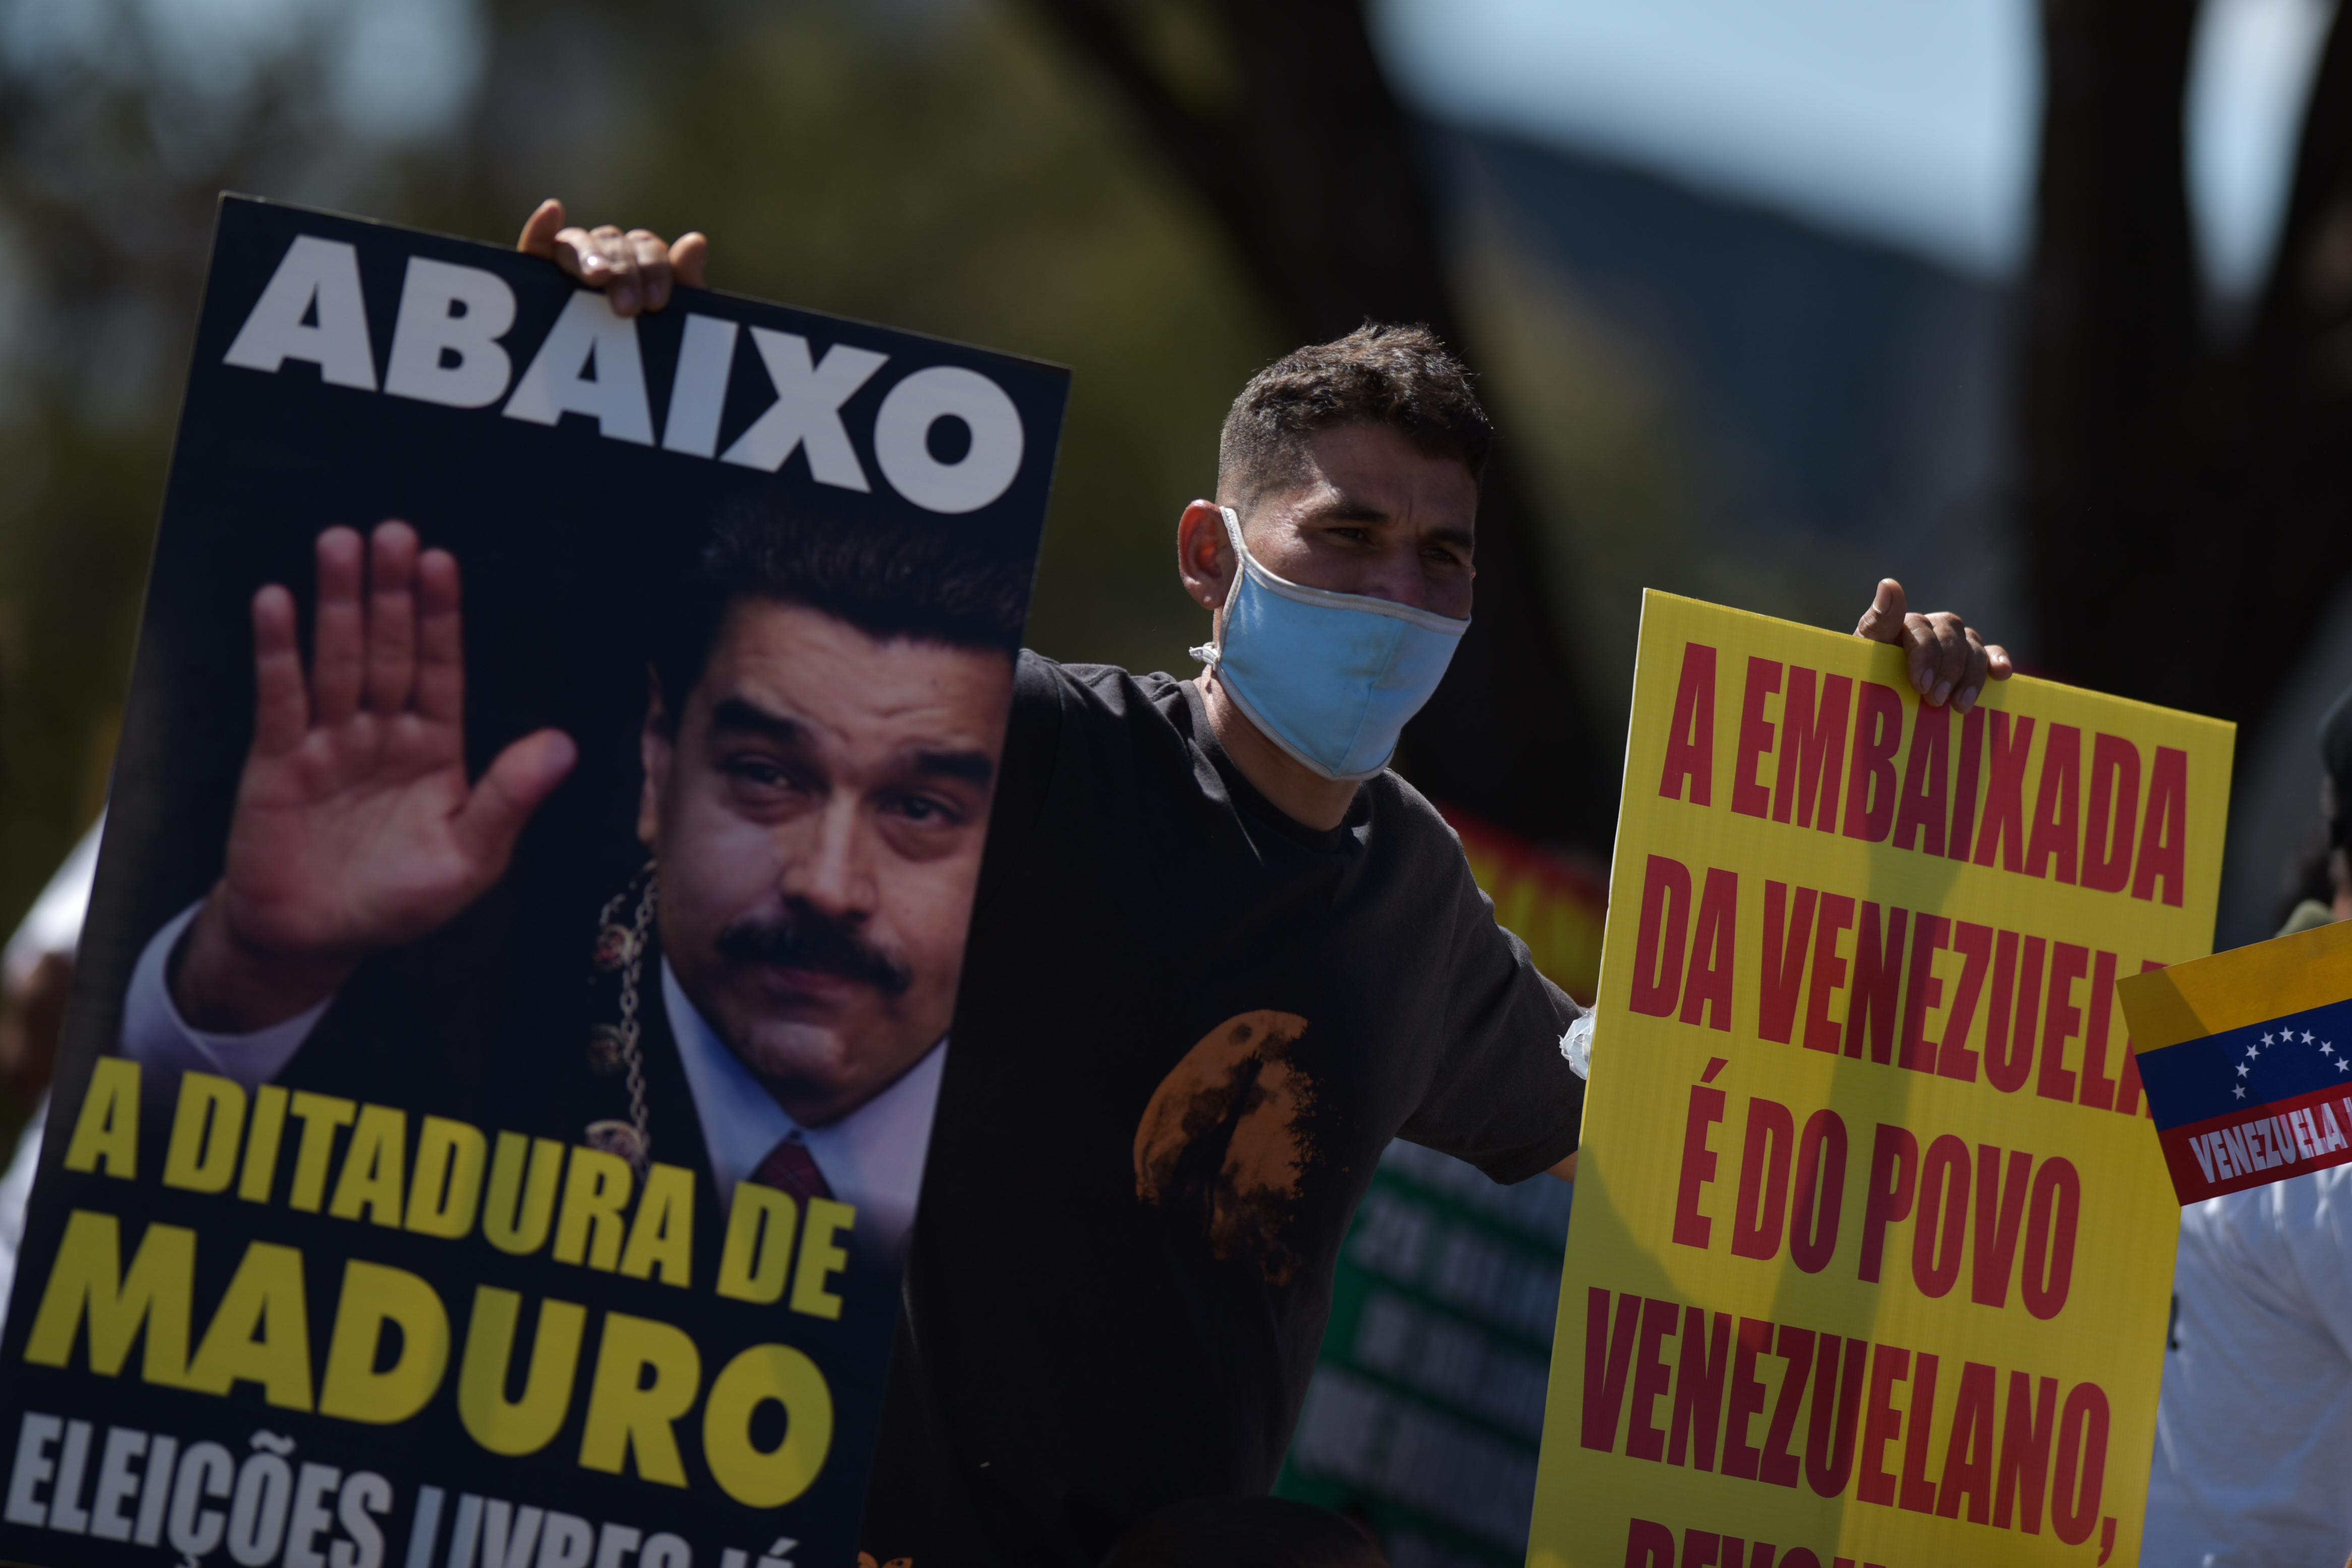 BRASILIA, BRAZIL - JULY 05: Supporters of Venezuelan opposition leader Juan Guaido attend a protest against Venezuela's President Nicolas Maduro during their country's independence day celebration next to the Venezuelan embassy amidst the coronavirus (COVID-19) pandemic on July 5, 2020 in Brasilia, Brazil. (Photo by Andre Borges/Getty Images)